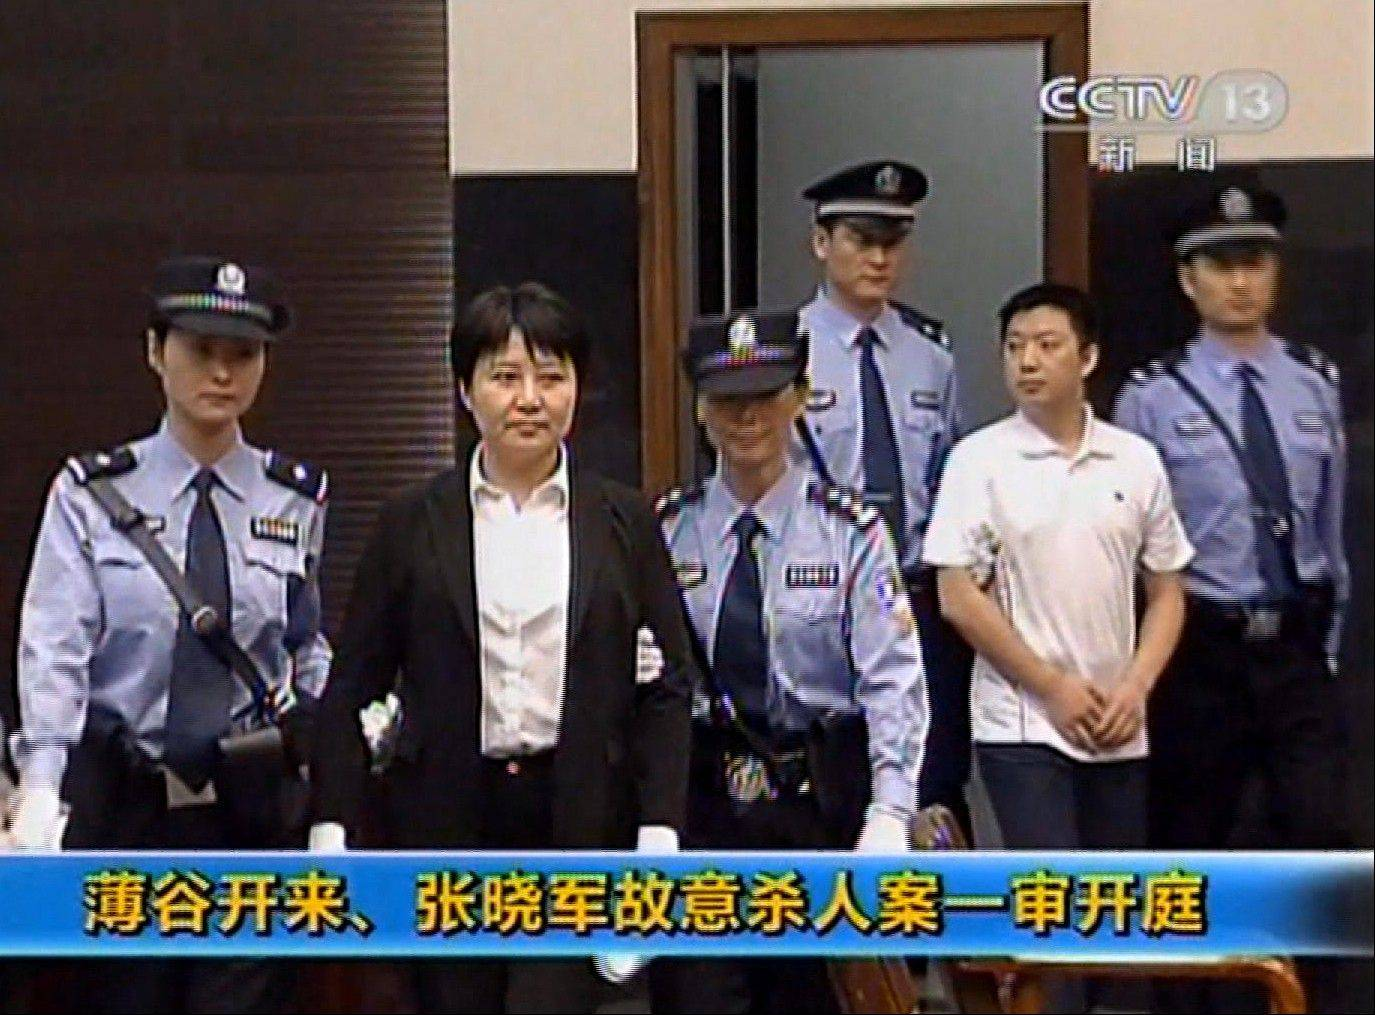 This video image taken from CCTV shows Gu Kailai, second left, the wife of disgraced politician Bo Xilai, being taken into the Intermediate People's Court in the eastern Chinese city of Hefei Thursday Aug. 9, 2012. According to testimony Thursday in one of China's highest-profile murder trials in years, Gu lured British businessman Neil Heywood to a hotel, where she got him drunk and fed him poison.